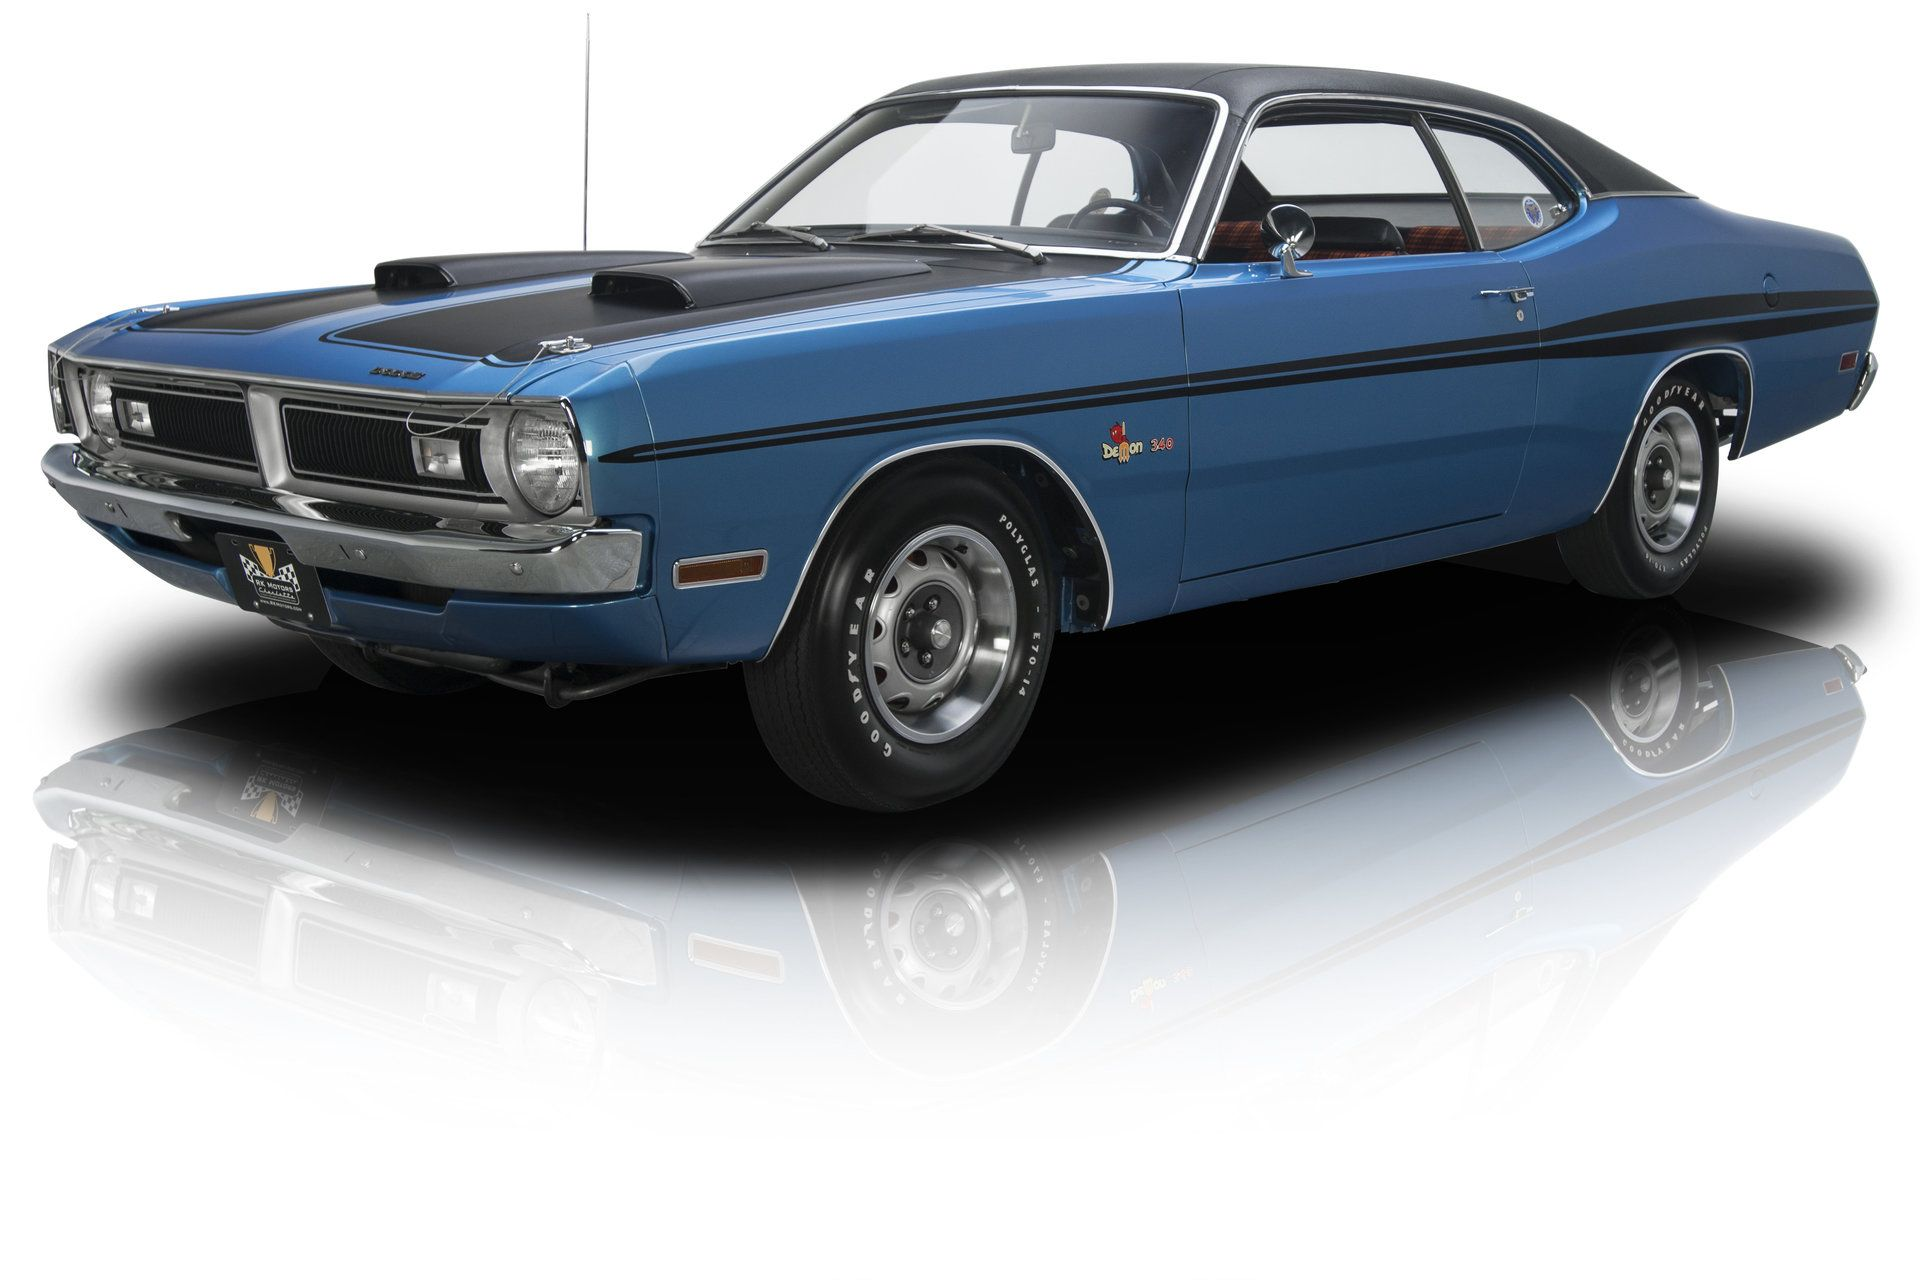 1971 Dodge Demon GSS Documented 1 of 1 Mr. Norm's Demon GSS 340 Six Pack V8  3 Speed Manual 3.91